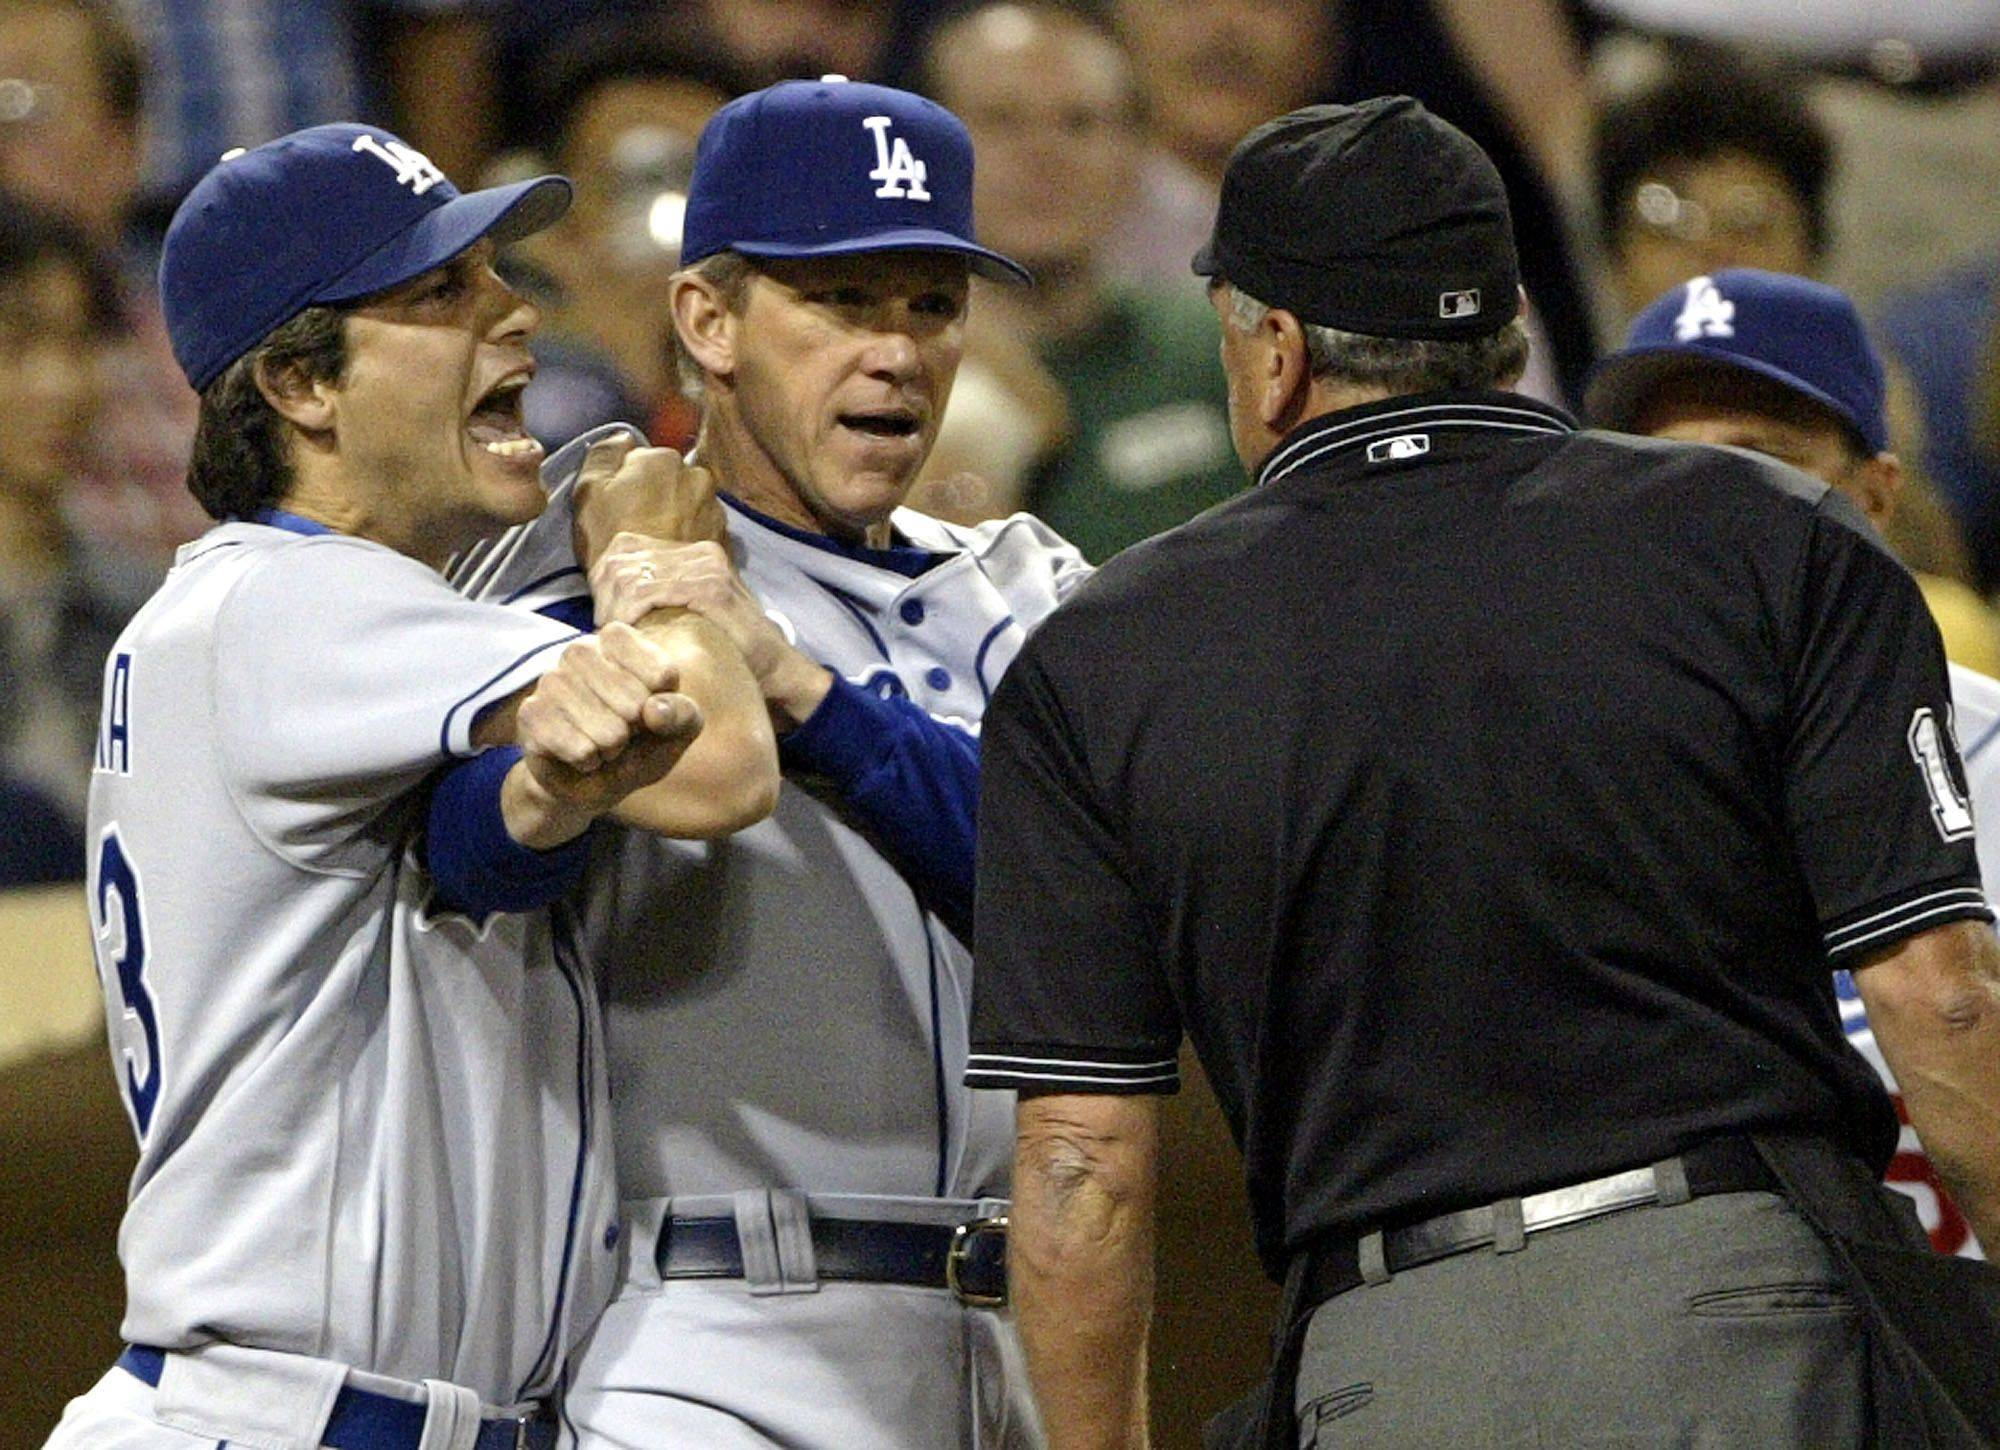 Los Angeles Dodgers manager Jim Tracy, center, holds back Robin Ventura, left, as Ventura screams at umpire Ed Montague in the seventh inning of the Dodgers' game with the San Diego Padres on Thursday, Sept. 23, 2004, in San Diego. Montague had called out Ventura on strikes in the previous inning.